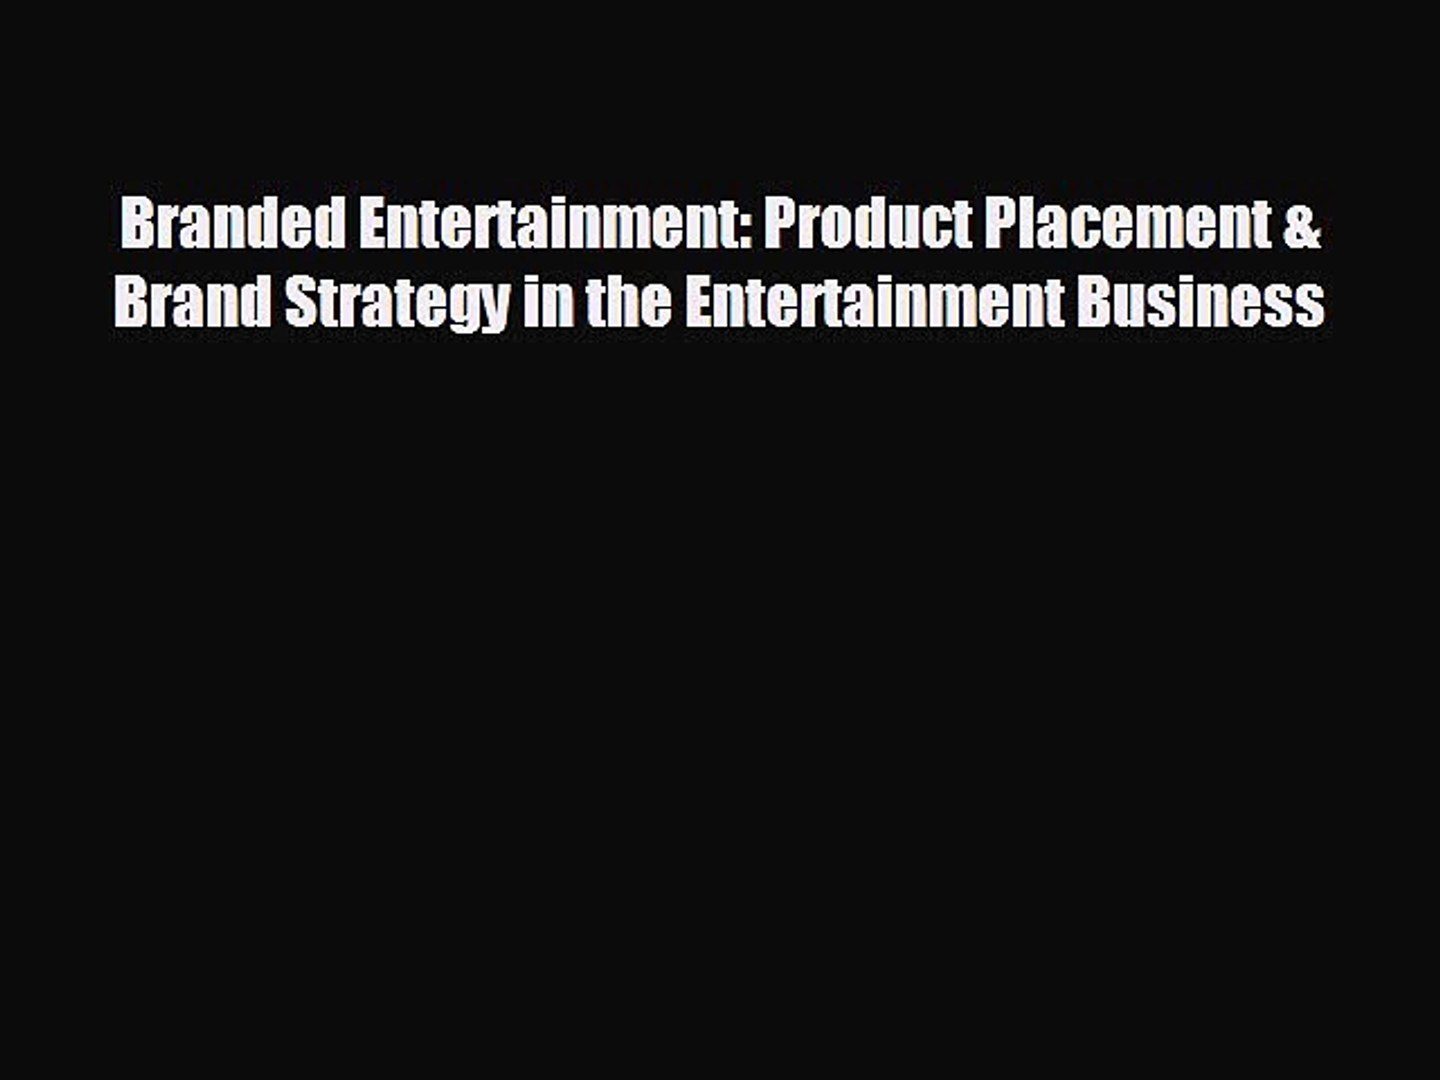 EBOOK ONLINE Branded Entertainment: Product Placement & Brand Strategy in the Entertainment